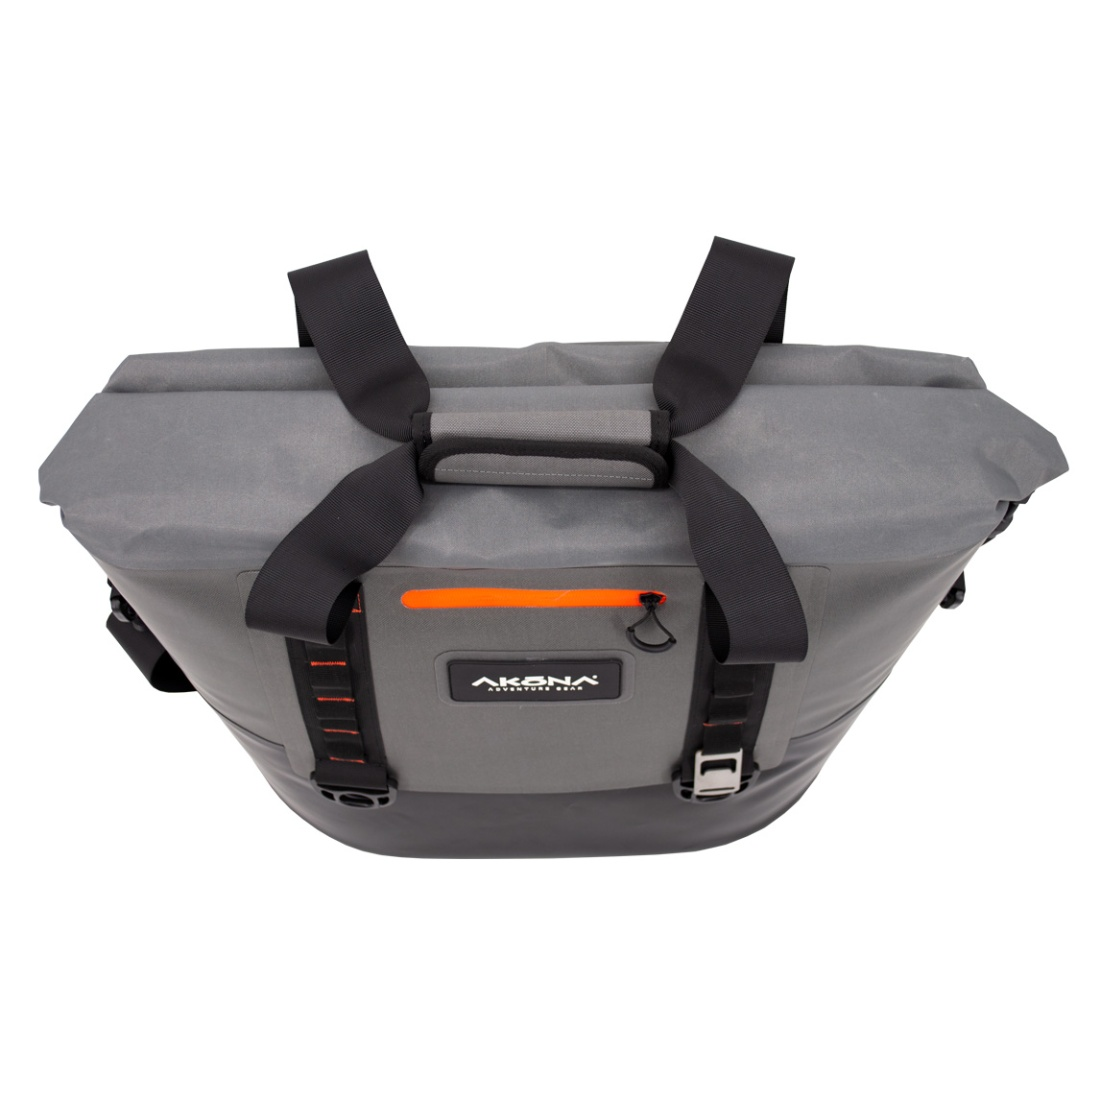 BAFFIN TOTE SOFT COOLER - AKB930 Front Top